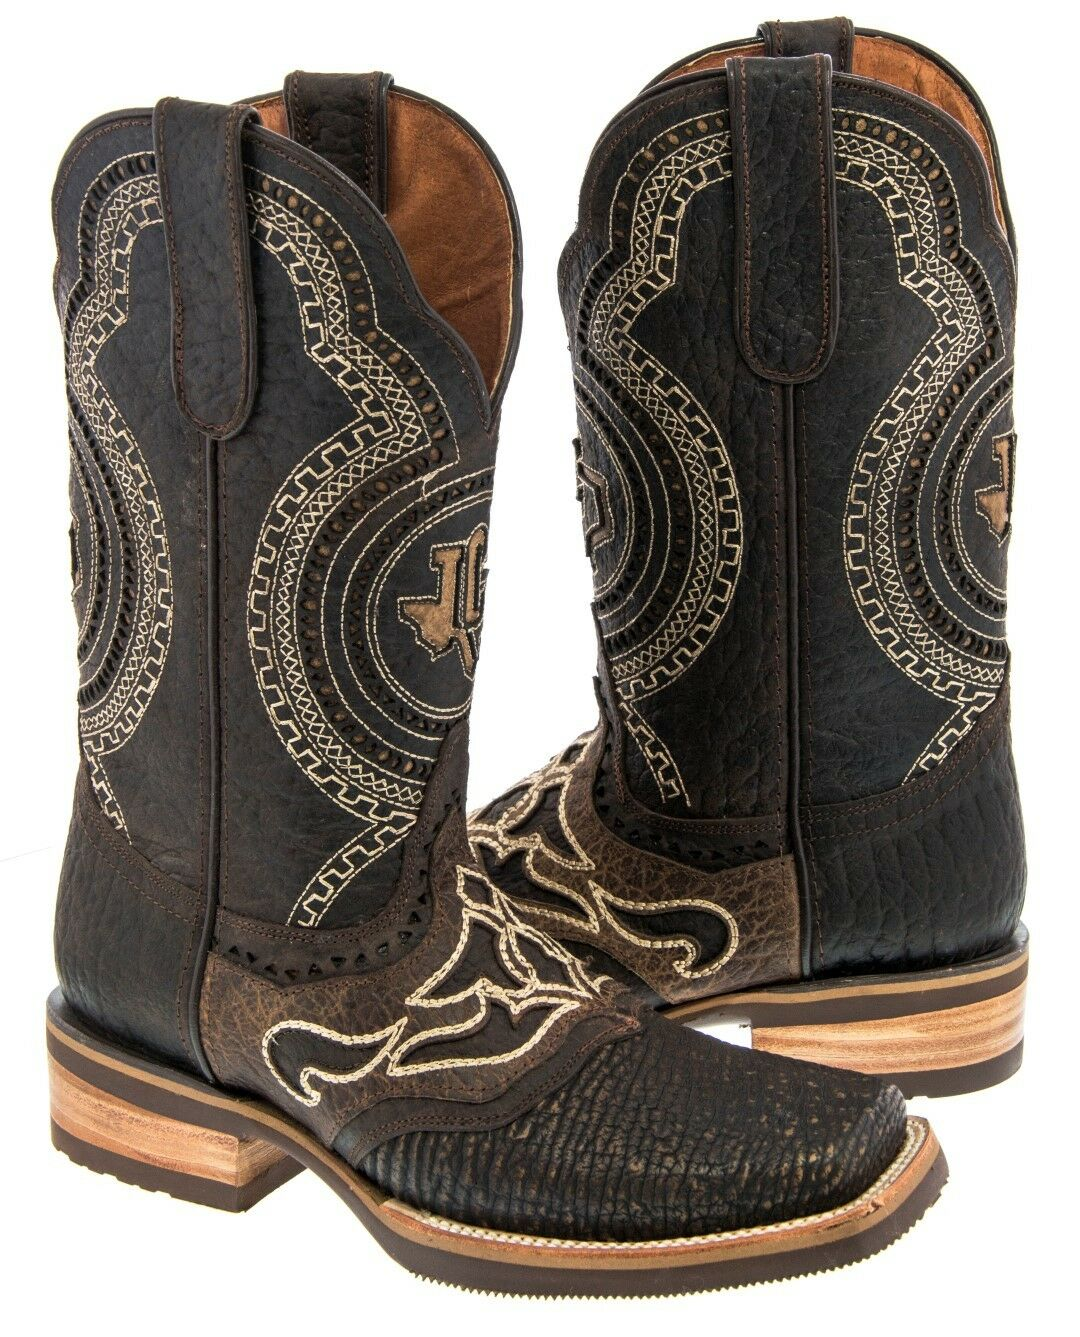 Mens Brown Shark Design Western Wear Leather Cowboy Country Riding Boots Rodeo